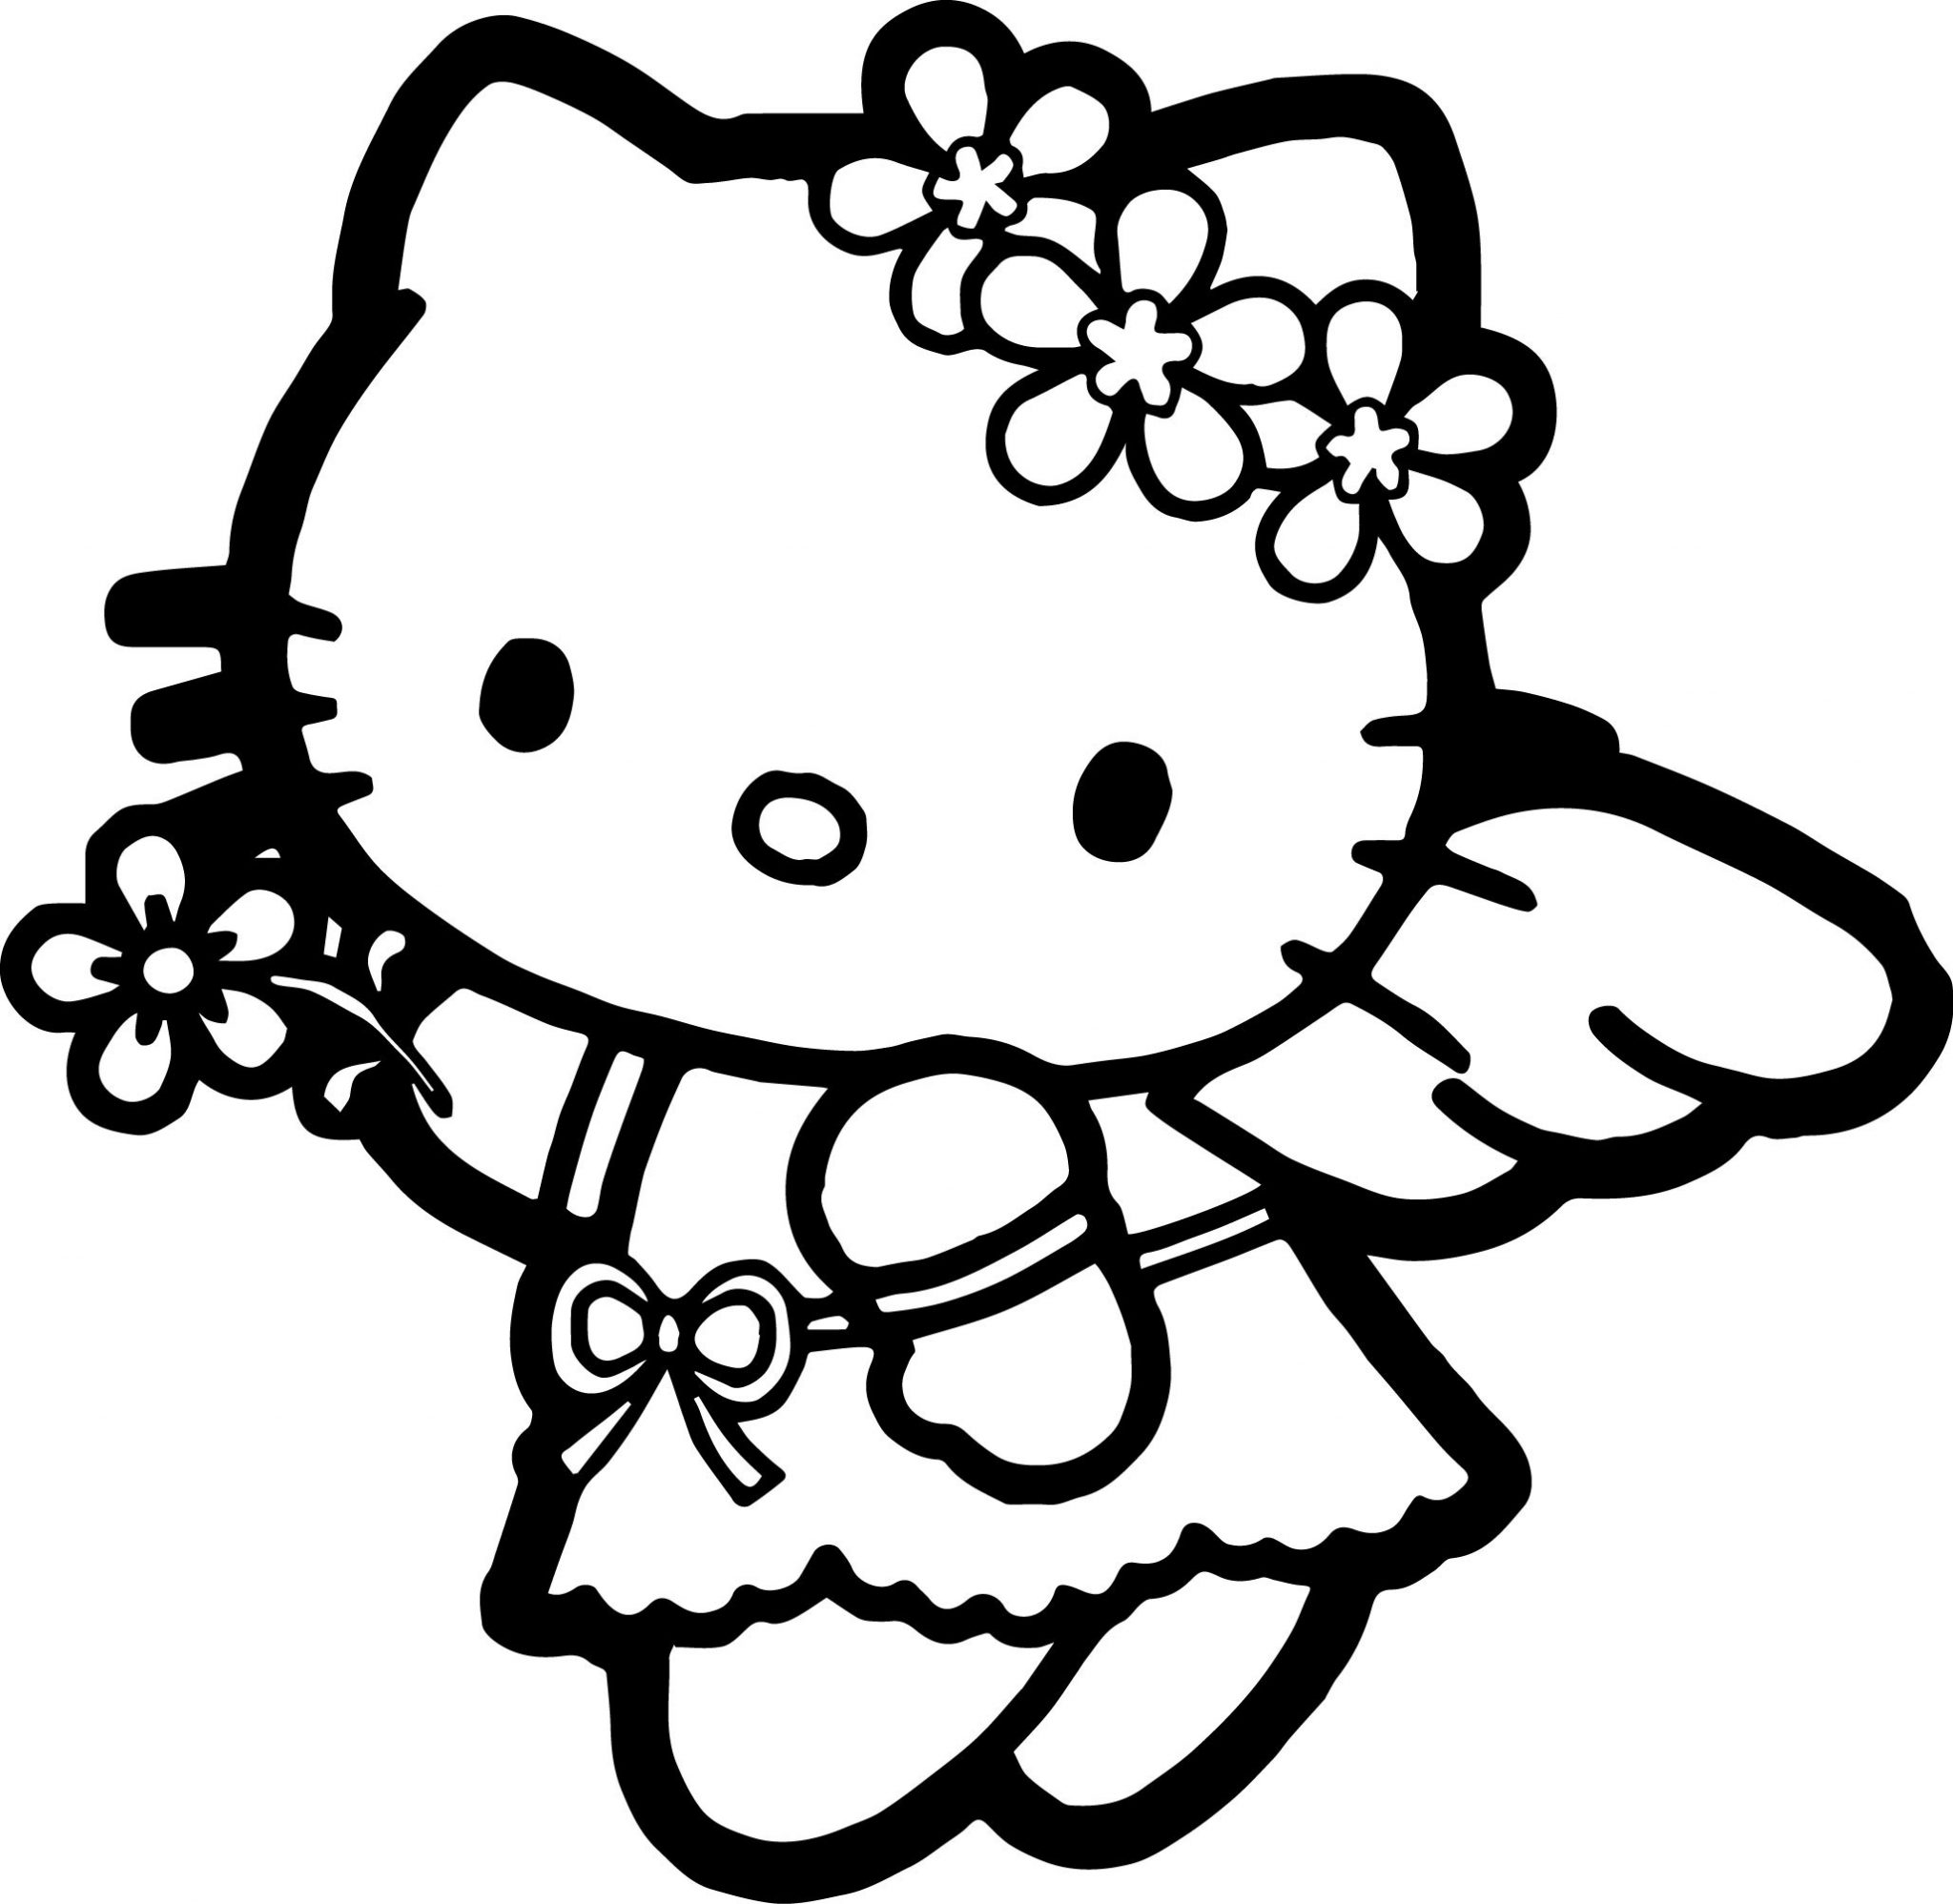 Download 68 Koleksi Gambar Hello Kitty Animasi Kartun Keren Gratis